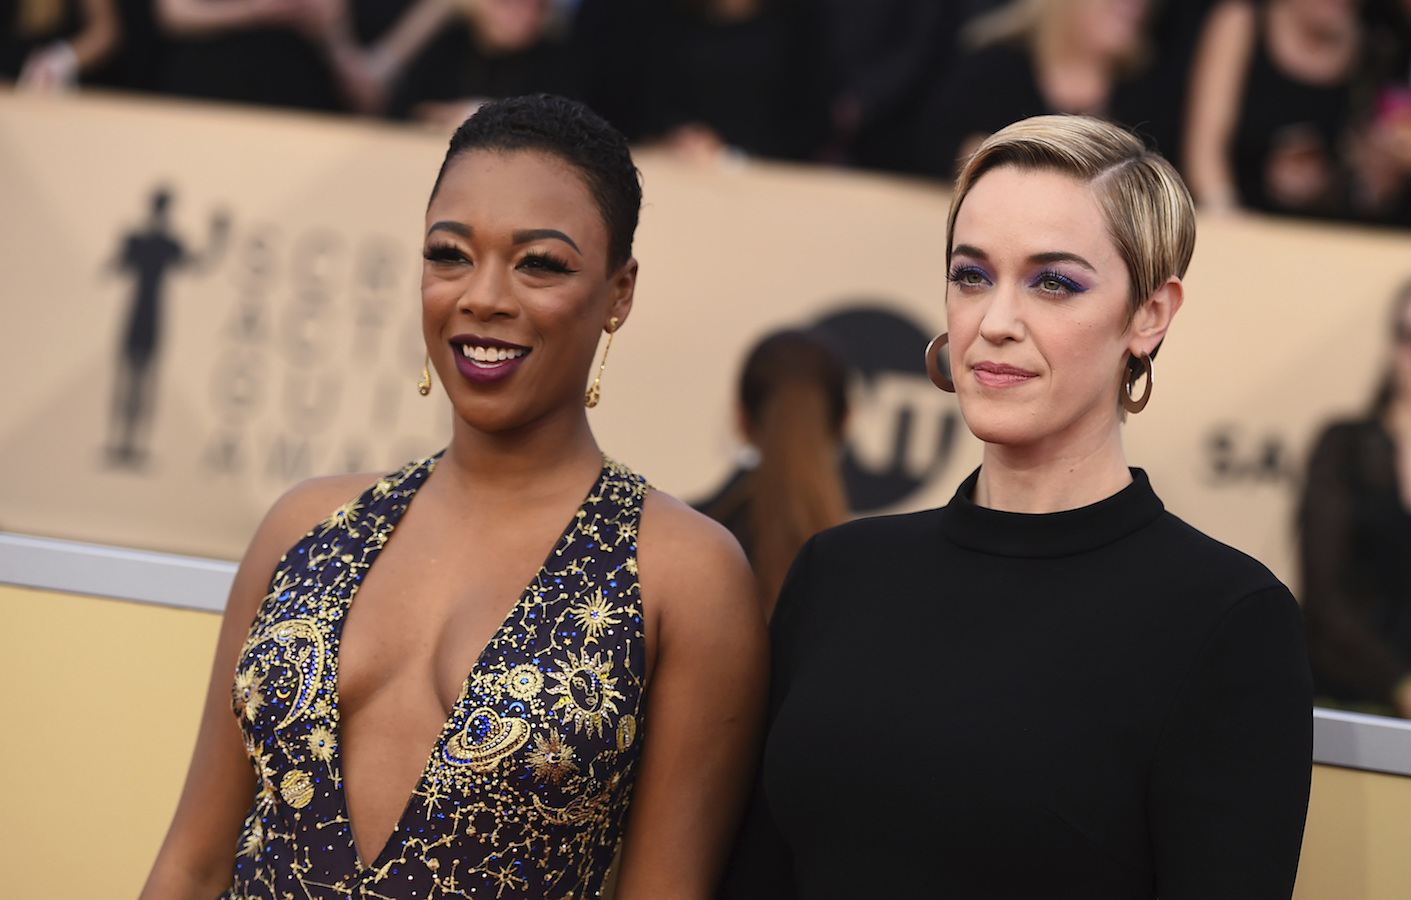 <div class='meta'><div class='origin-logo' data-origin='AP'></div><span class='caption-text' data-credit='Jordan Strauss/Invision/AP'>Samira Wiley, left and Lauren Morelli arrive at the 24th annual Screen Actors Guild Awards at the Shrine Auditorium & Expo Hall on Sunday, Jan. 21, 2018, in Los Angeles.</span></div>